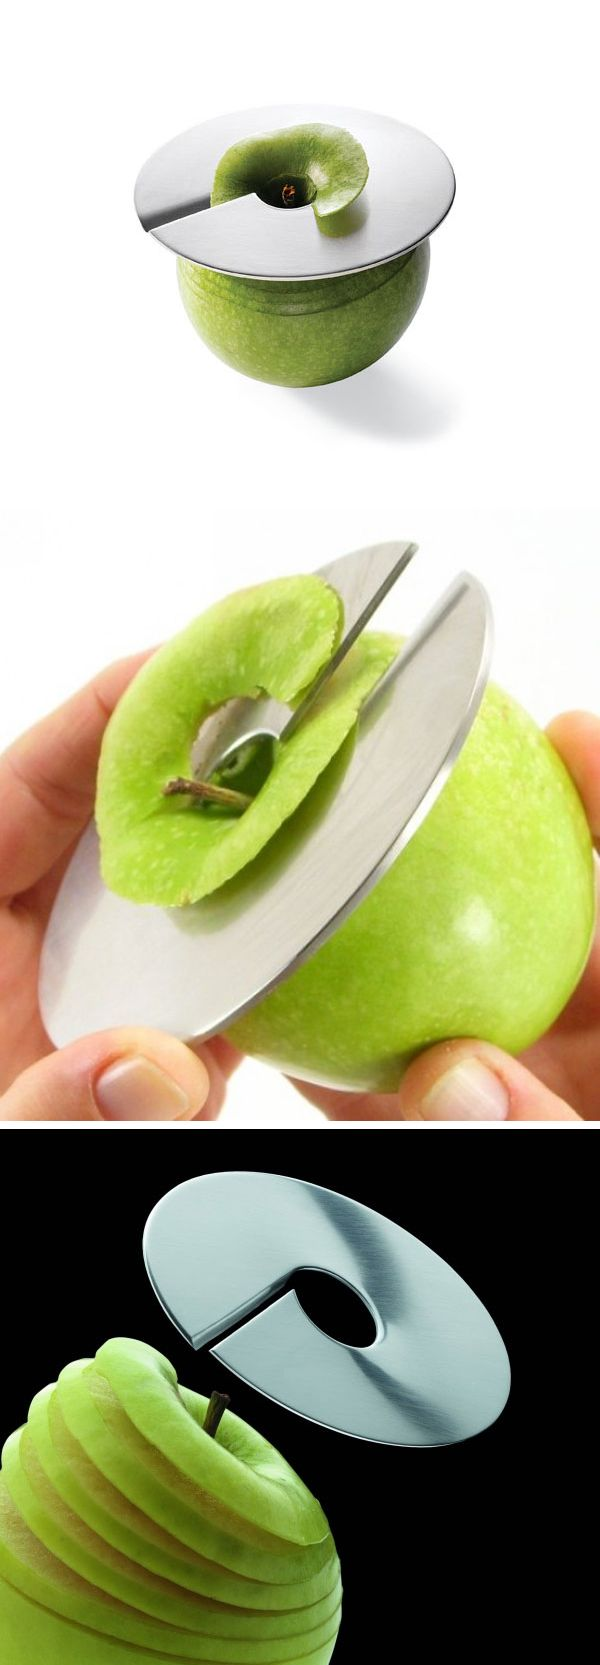 The coolest apple peeler and corer Ever!!!